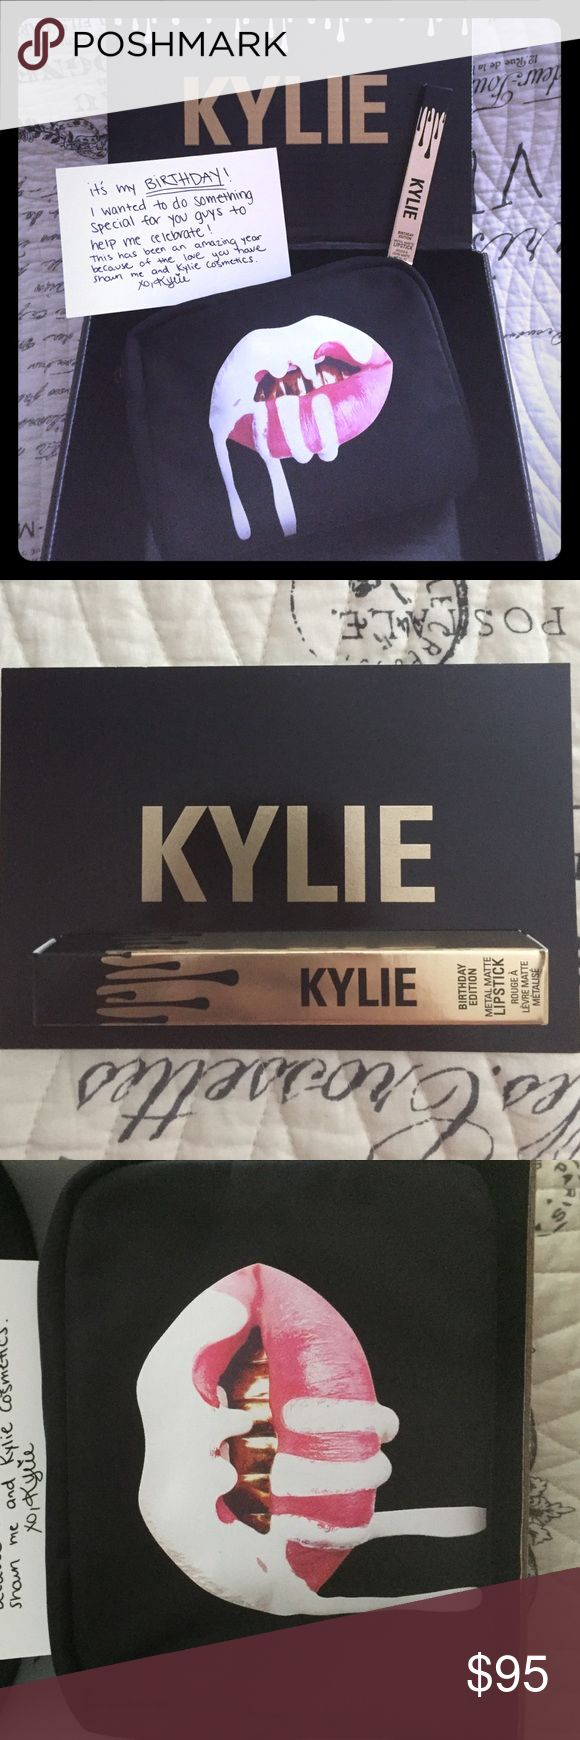 💥Kylie Birthday Makeup Bag & Lord Metal Bundle💥 A limited edition birthday special Kylie Jenner's Makeup Case 👝 and Lord Metal Lipstick 💄bundled into one. ✨Brand new, AUTHENTIC never been used✨ And I will ship it in the original Kylie box with the card. 💋 Kylie Cosmetics Makeup